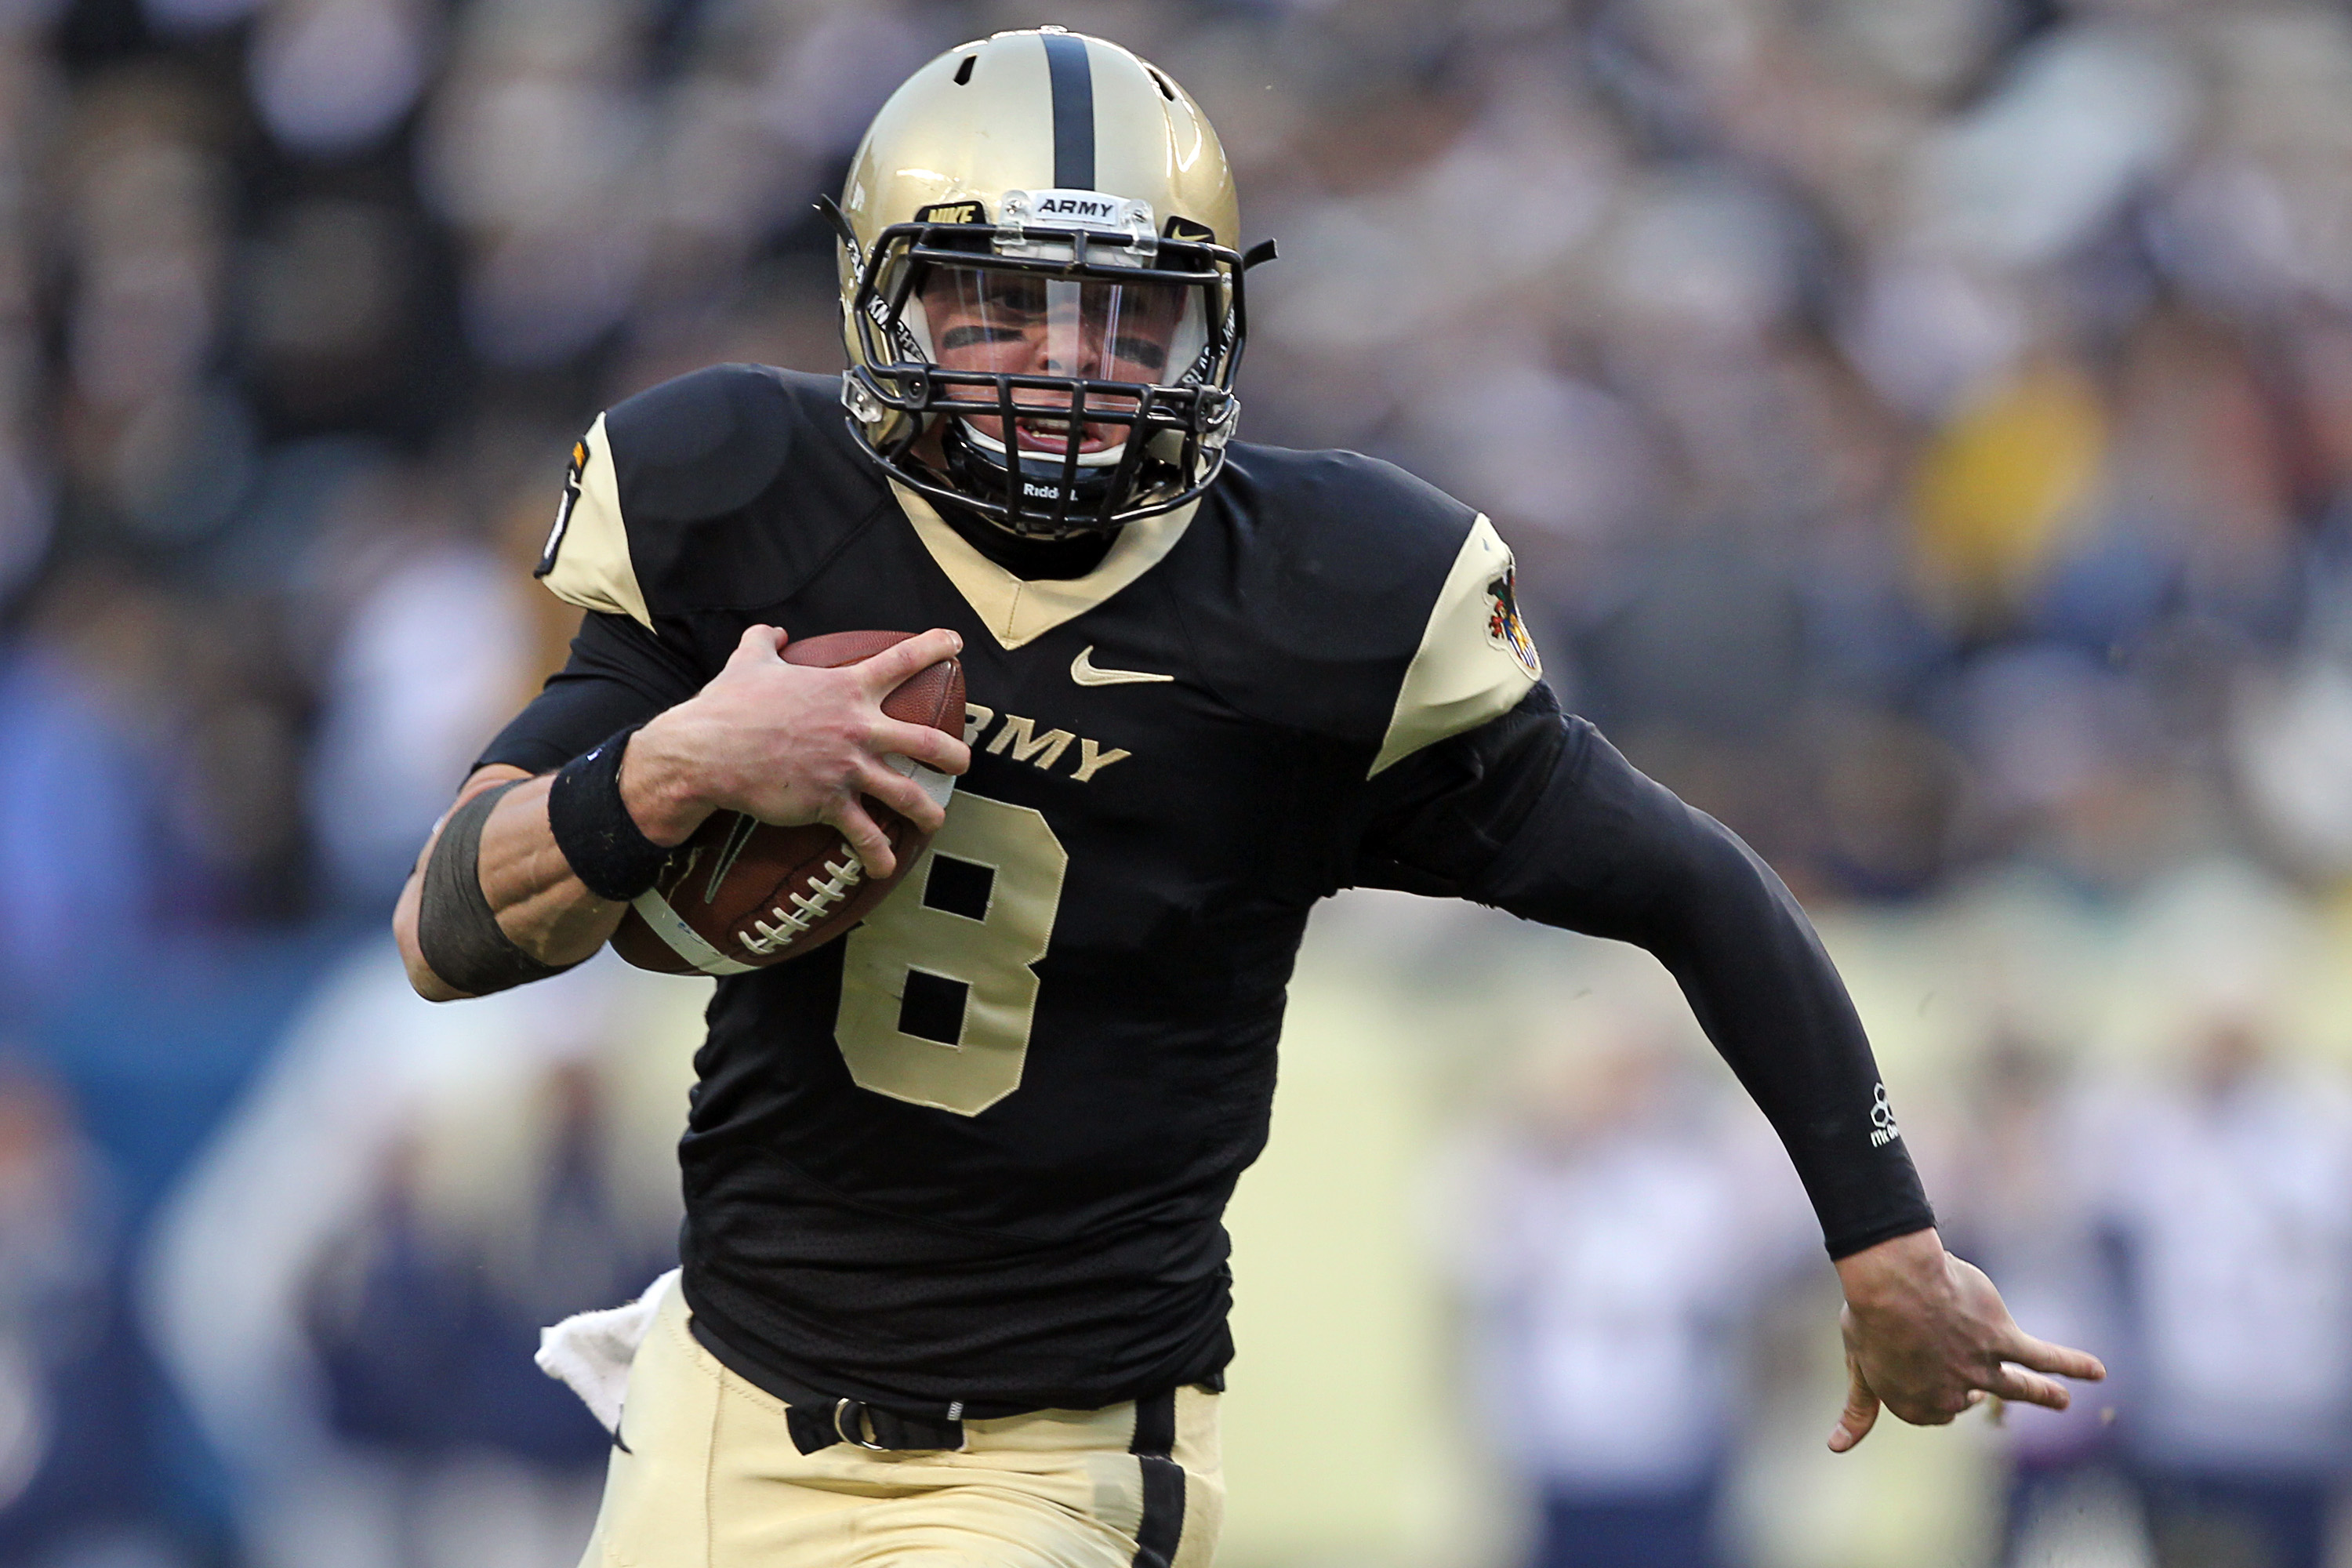 PHILADELPHIA - DECEMBER 11: Quarterback Trent Steelman #8 of the Army Black Knights runs with the ball during the game against the Navy Midshipmen on December 11, 2010 at Lincoln Financial Field in Philadelphia, Pennsylvania. The Midshipmen won 31-17. (Ph